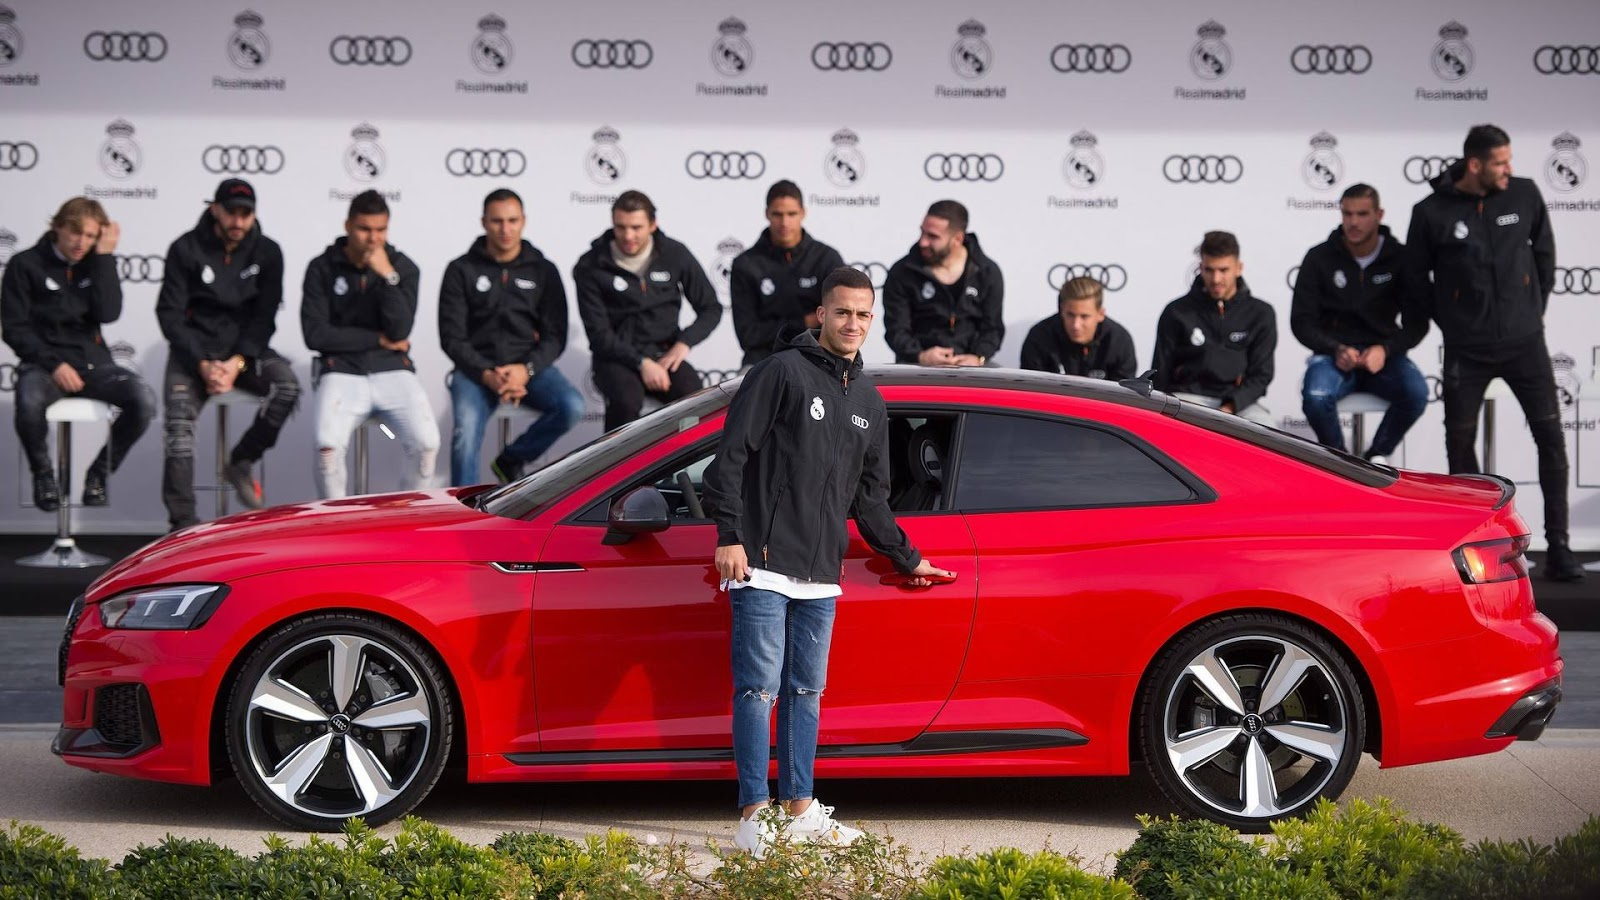 Real Madrid Football Players Get New Company Cars From Audi - Audi car company